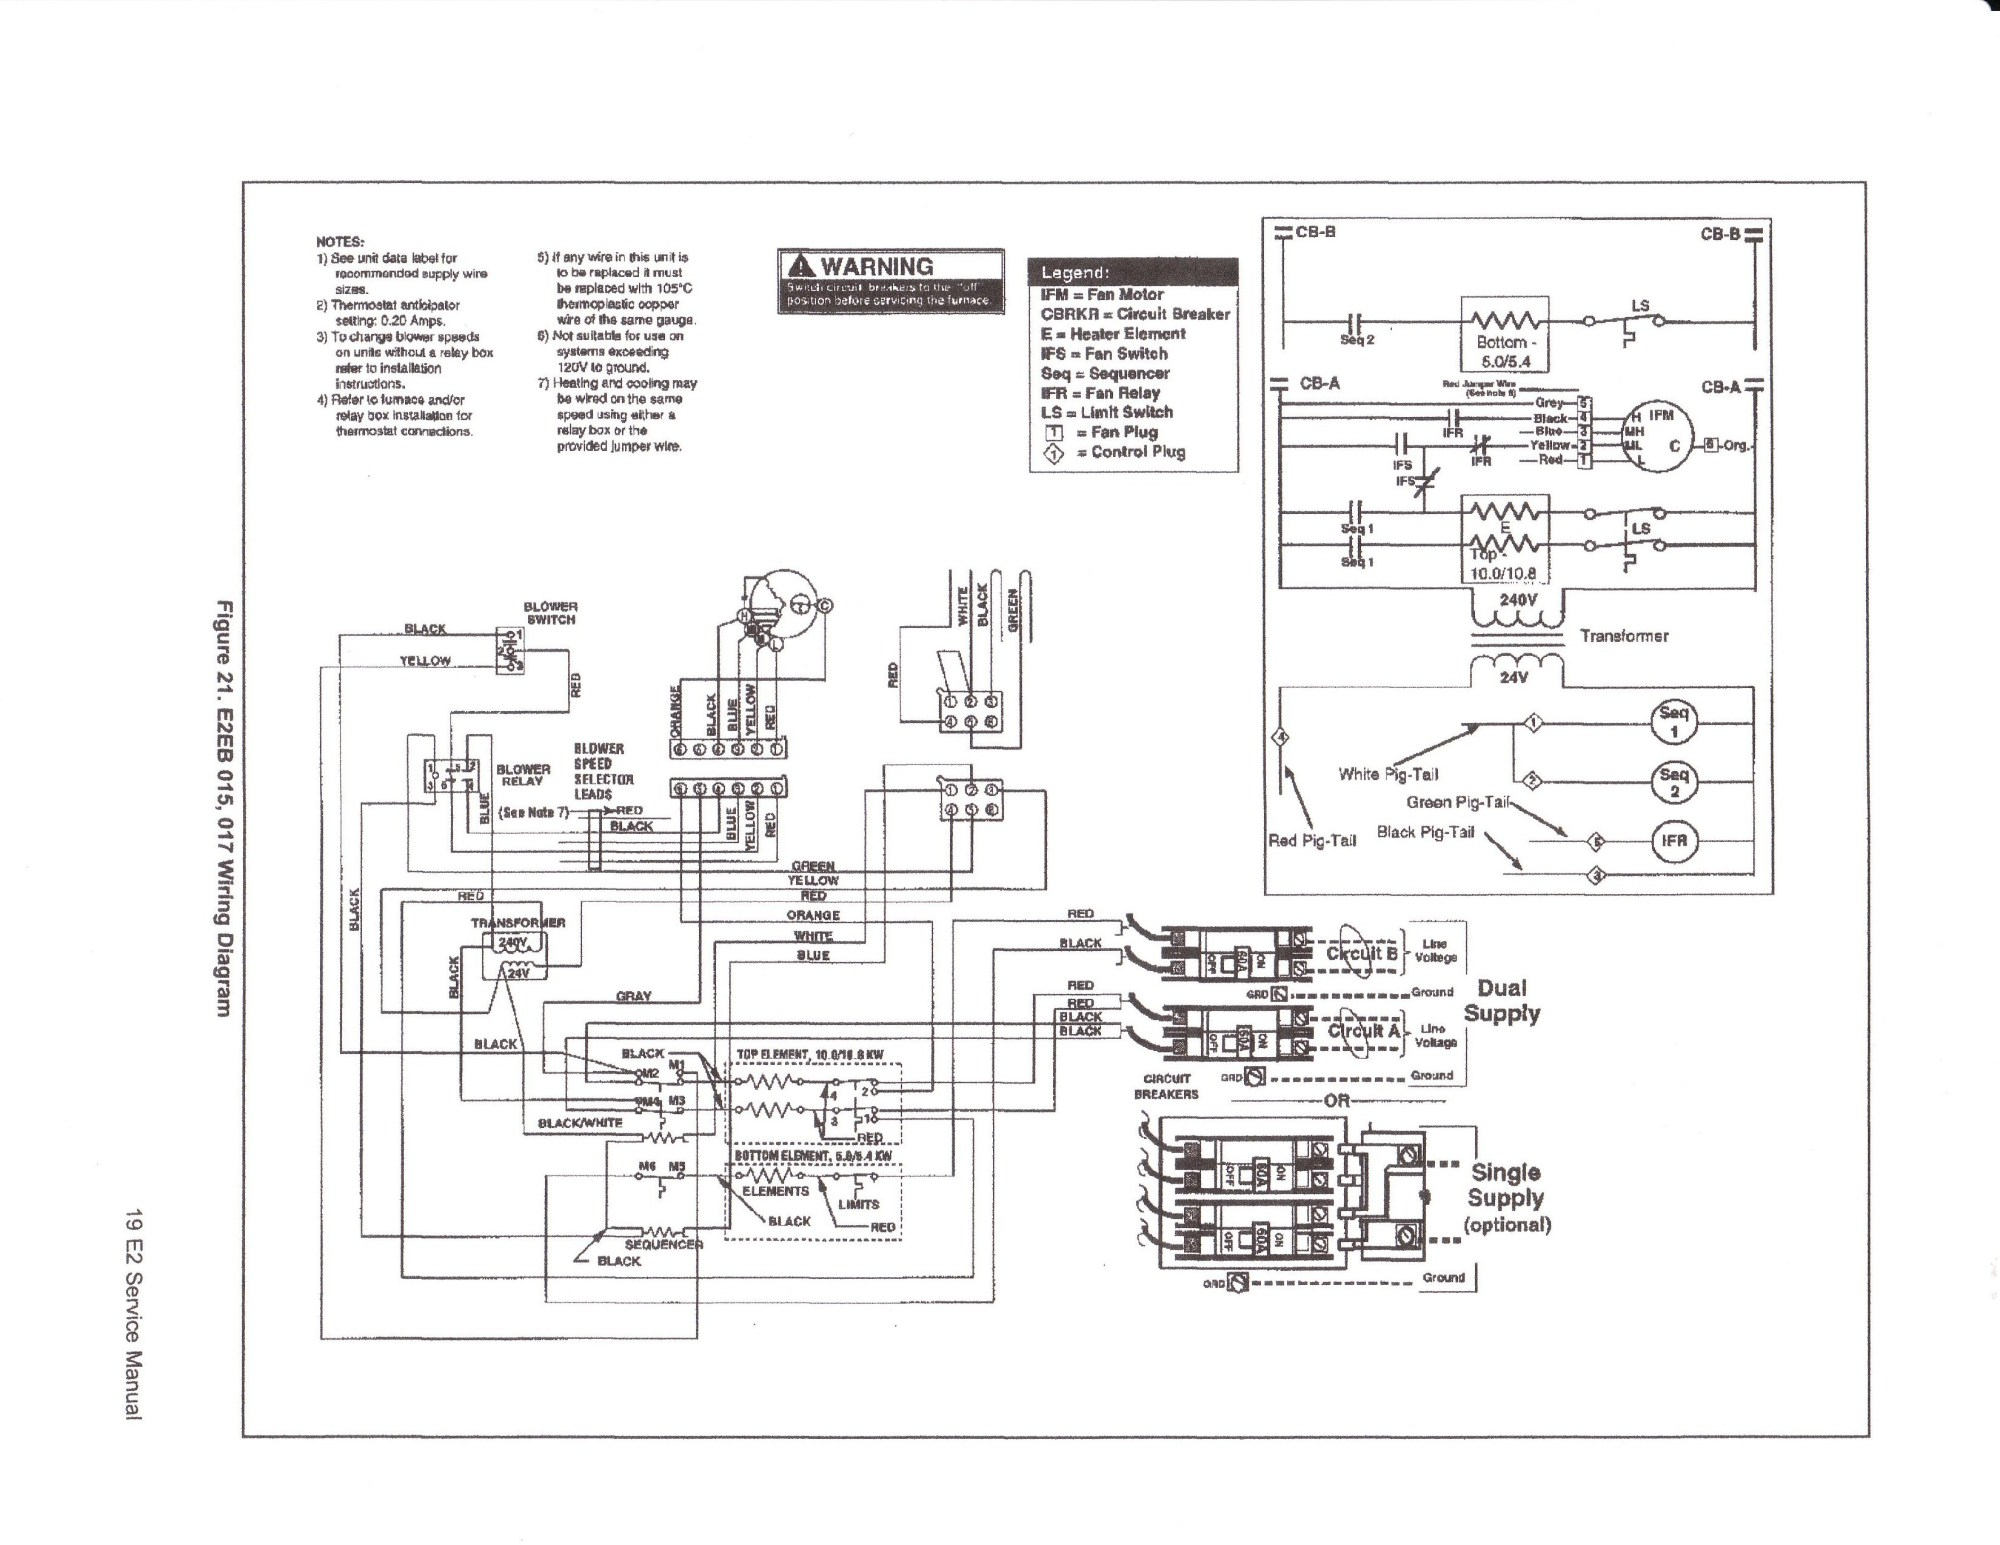 hight resolution of wiring diagram 3500a816 wiring diagram toolbox3500a816 wiring diagram wiring diagram filter 3500a816 wiring diagram wiring diagrams